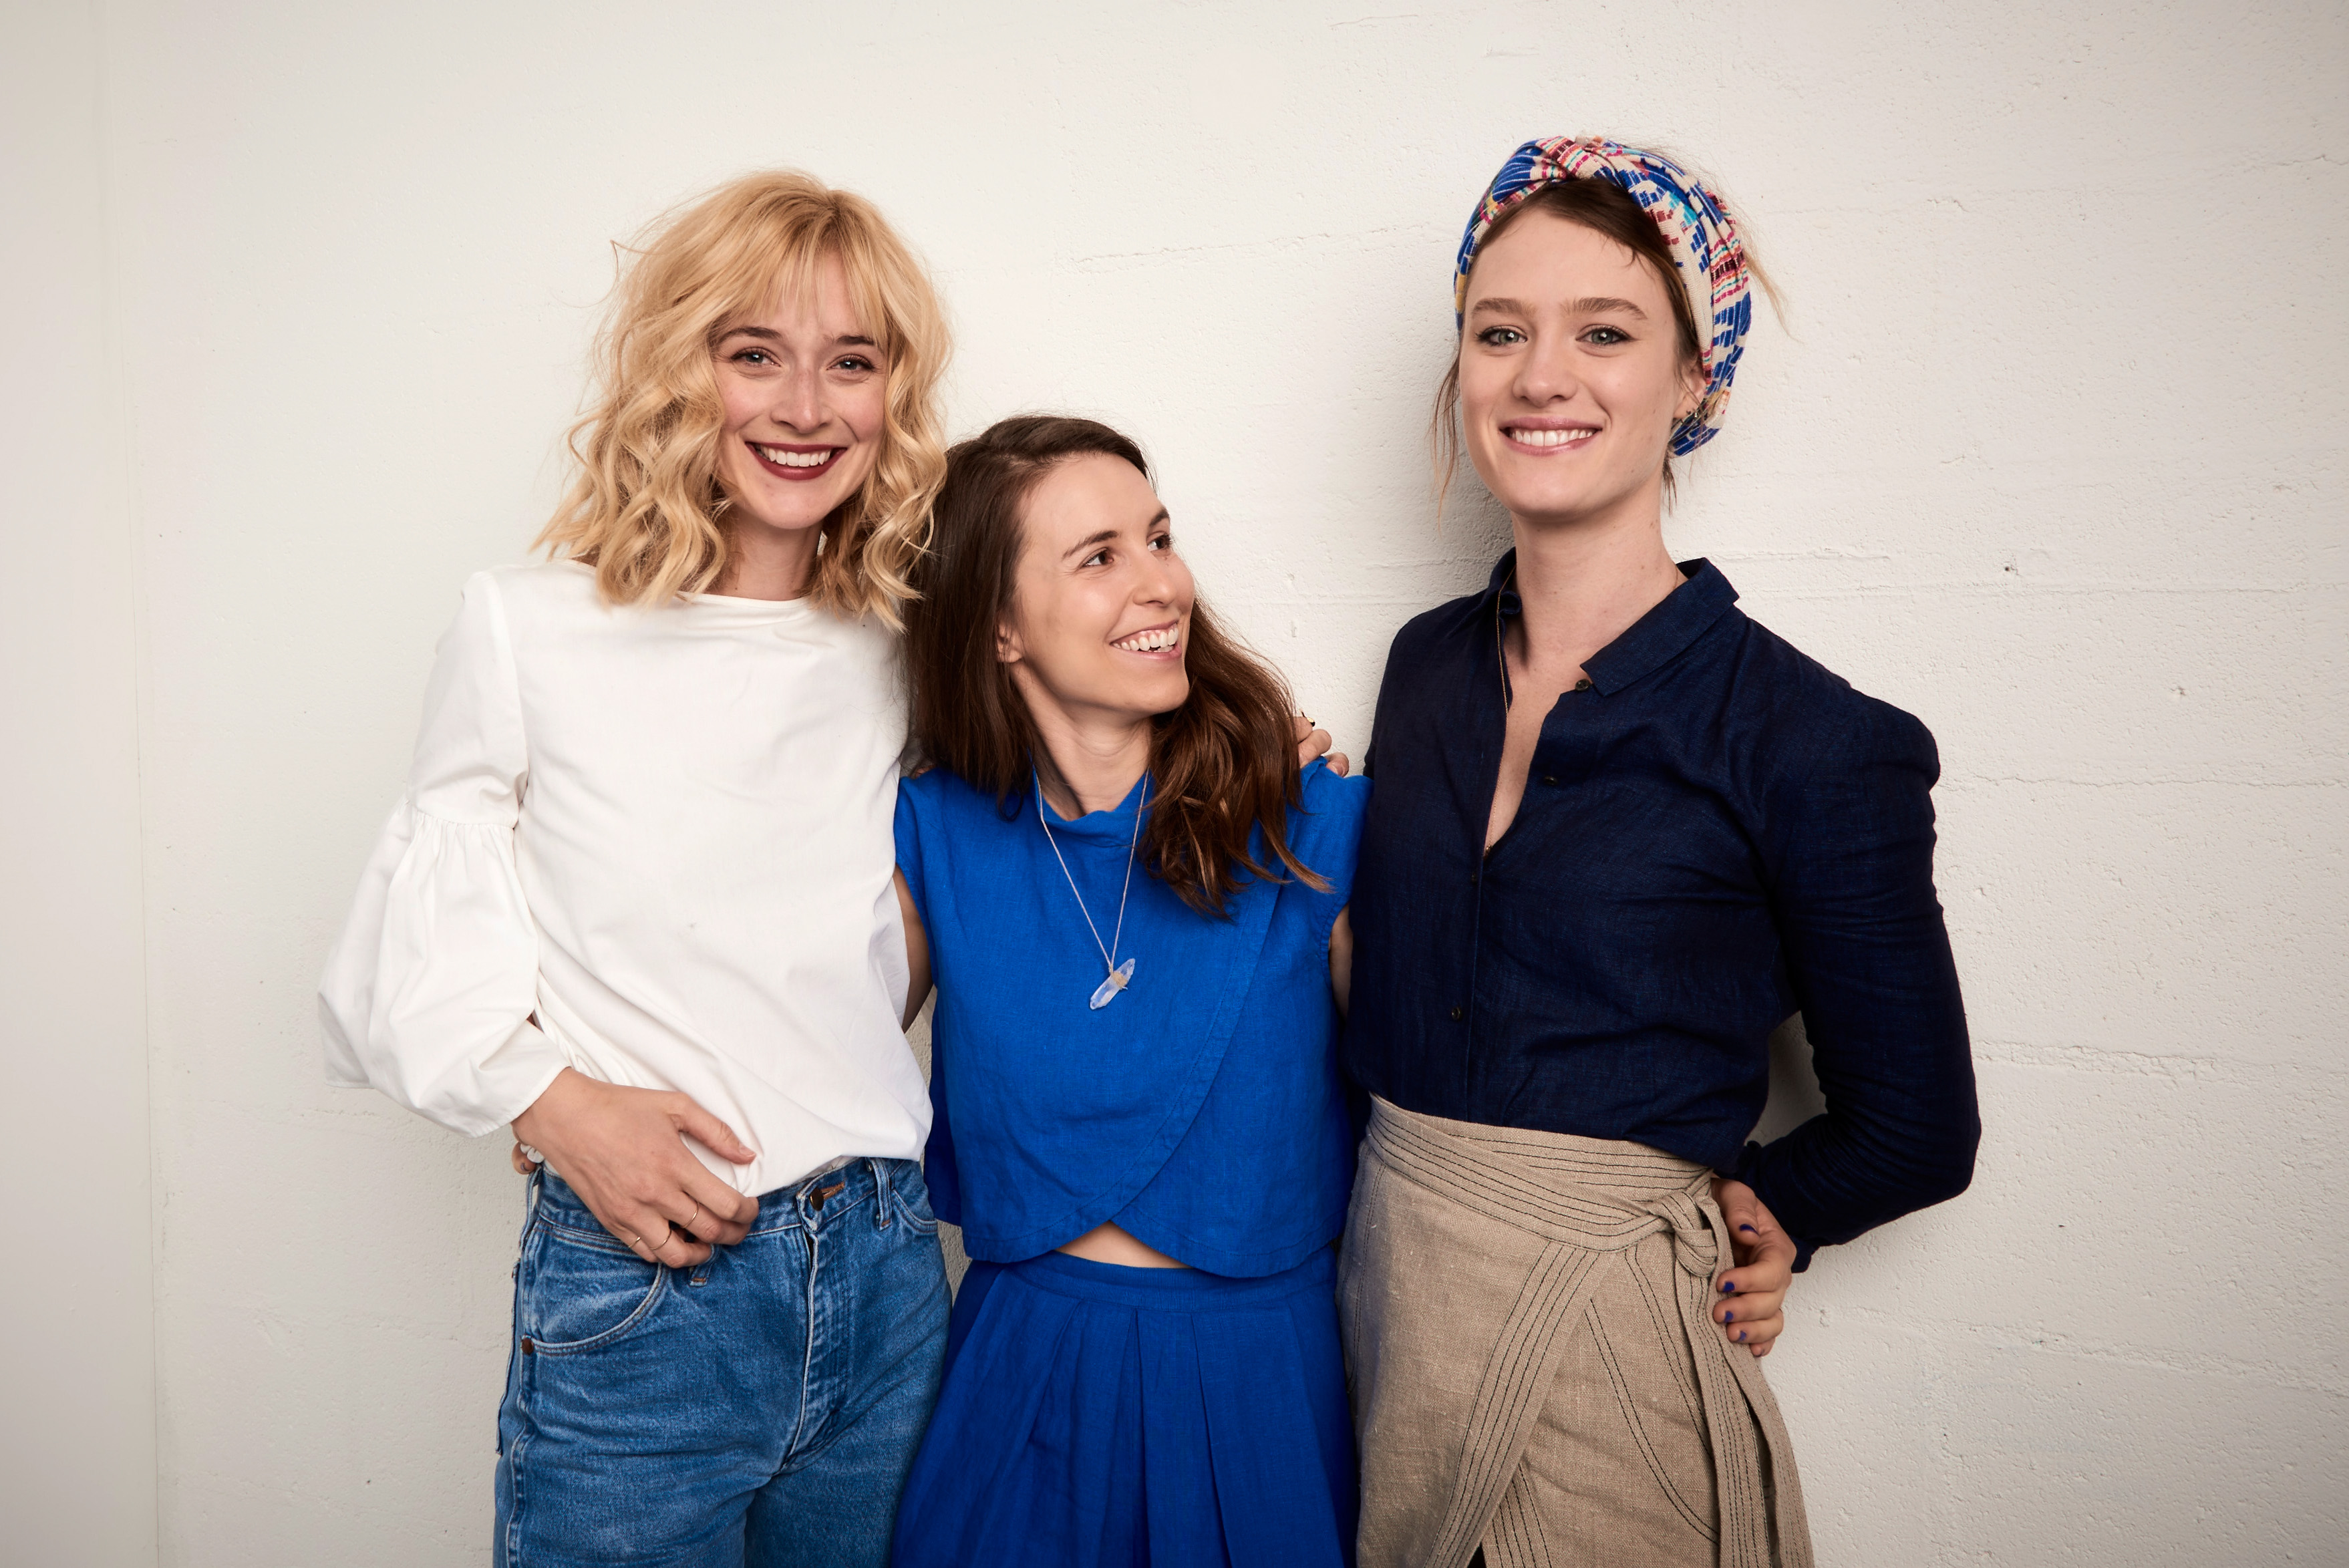 Actress Caitlin FitzGerald, director Sophia Takal, and actress Mackenzie Davis pose at the Tribeca Film Festival Getty Images Studio on April 15, 2016 in New York City.